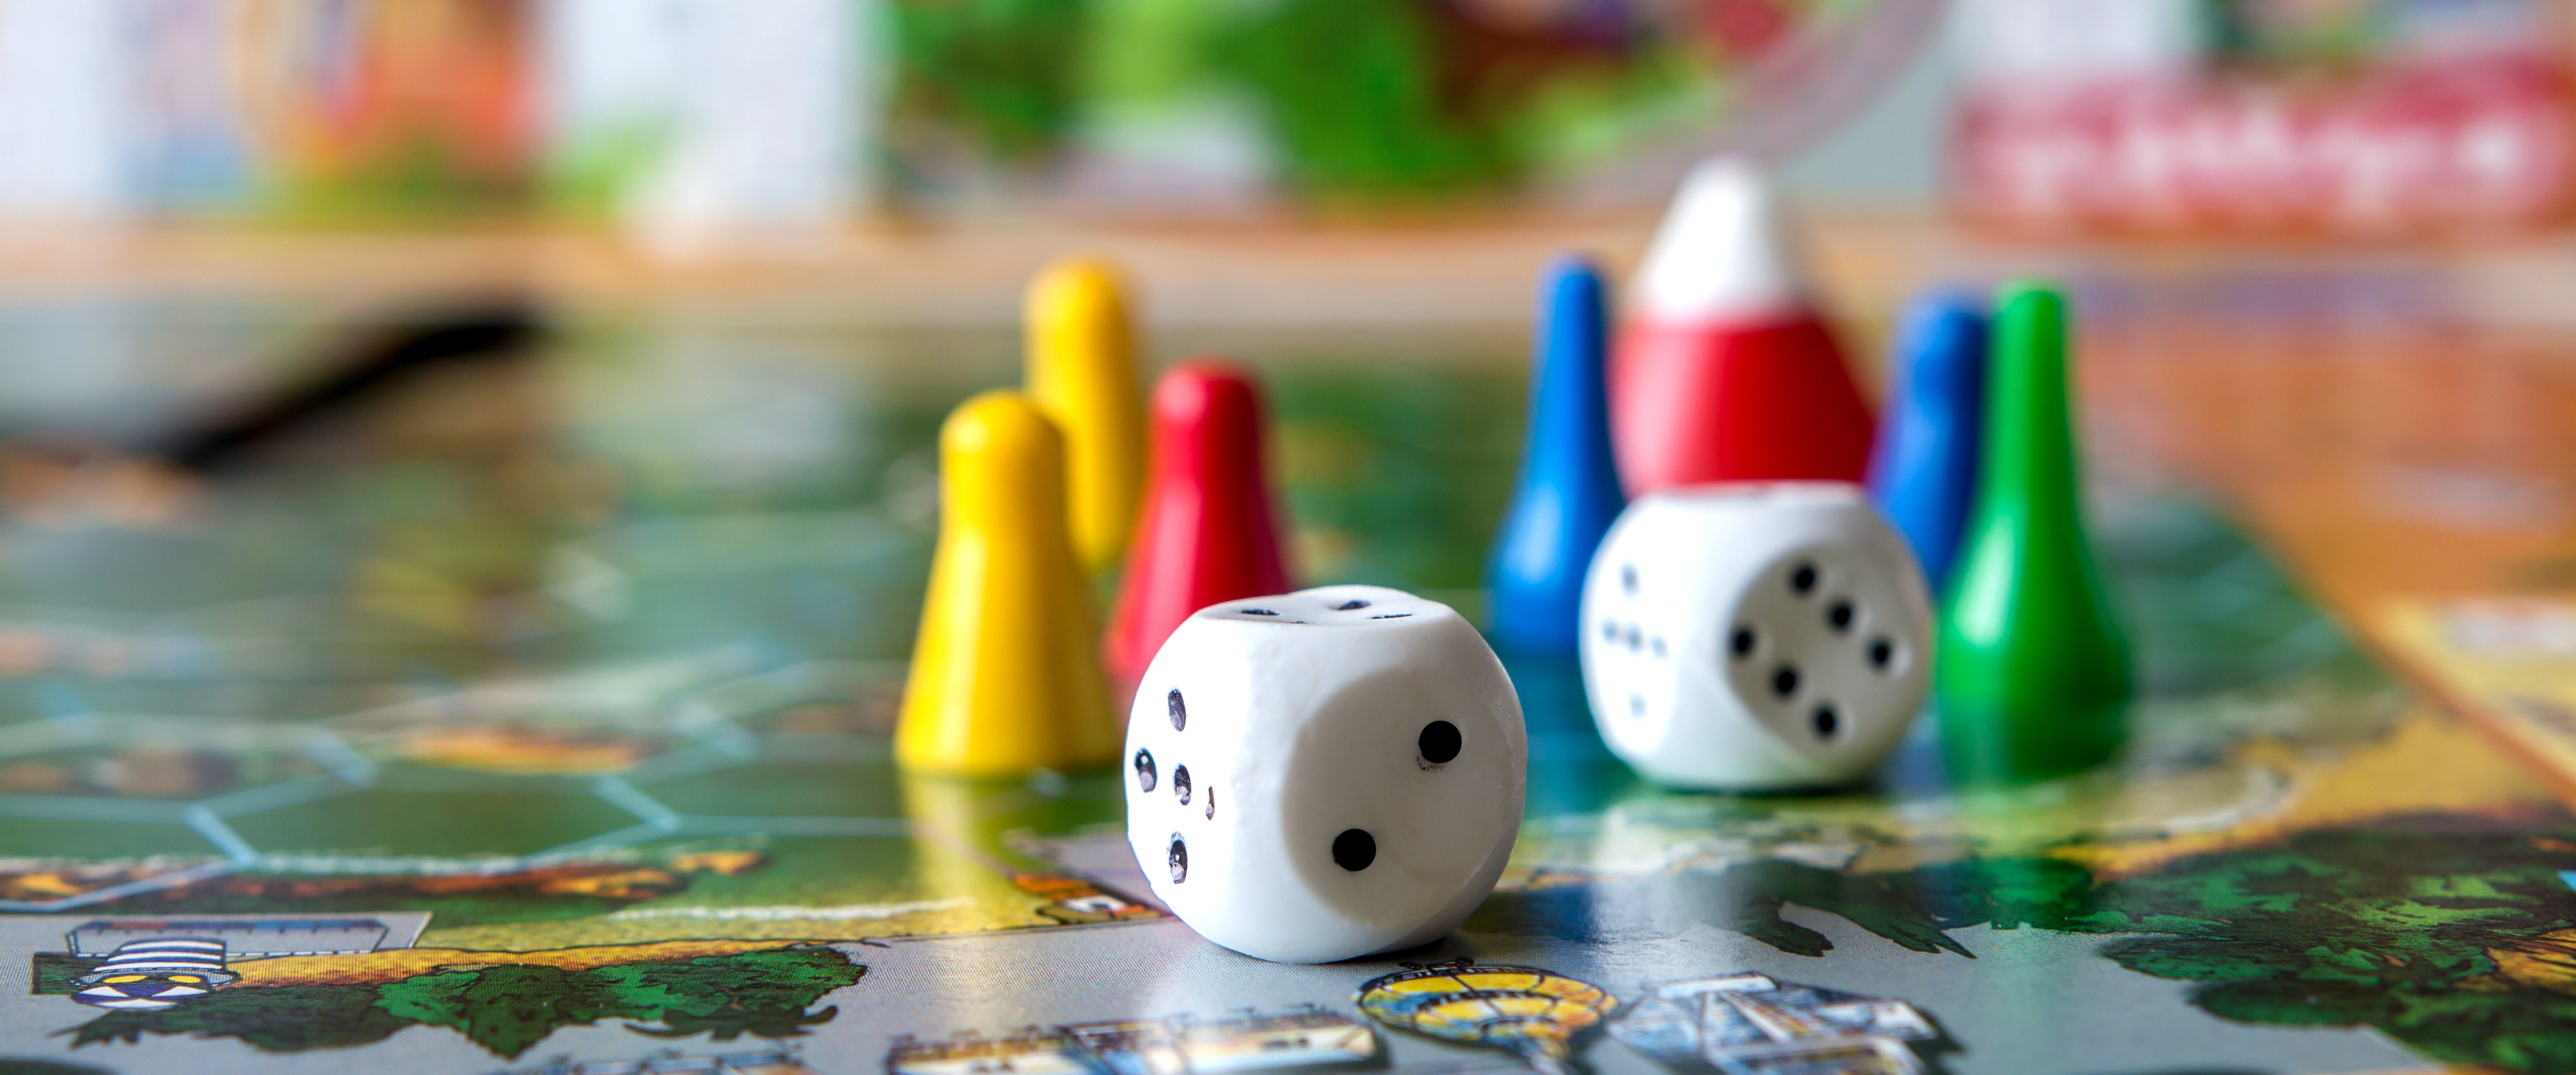 Top 5 Memory Games for Senior Adults